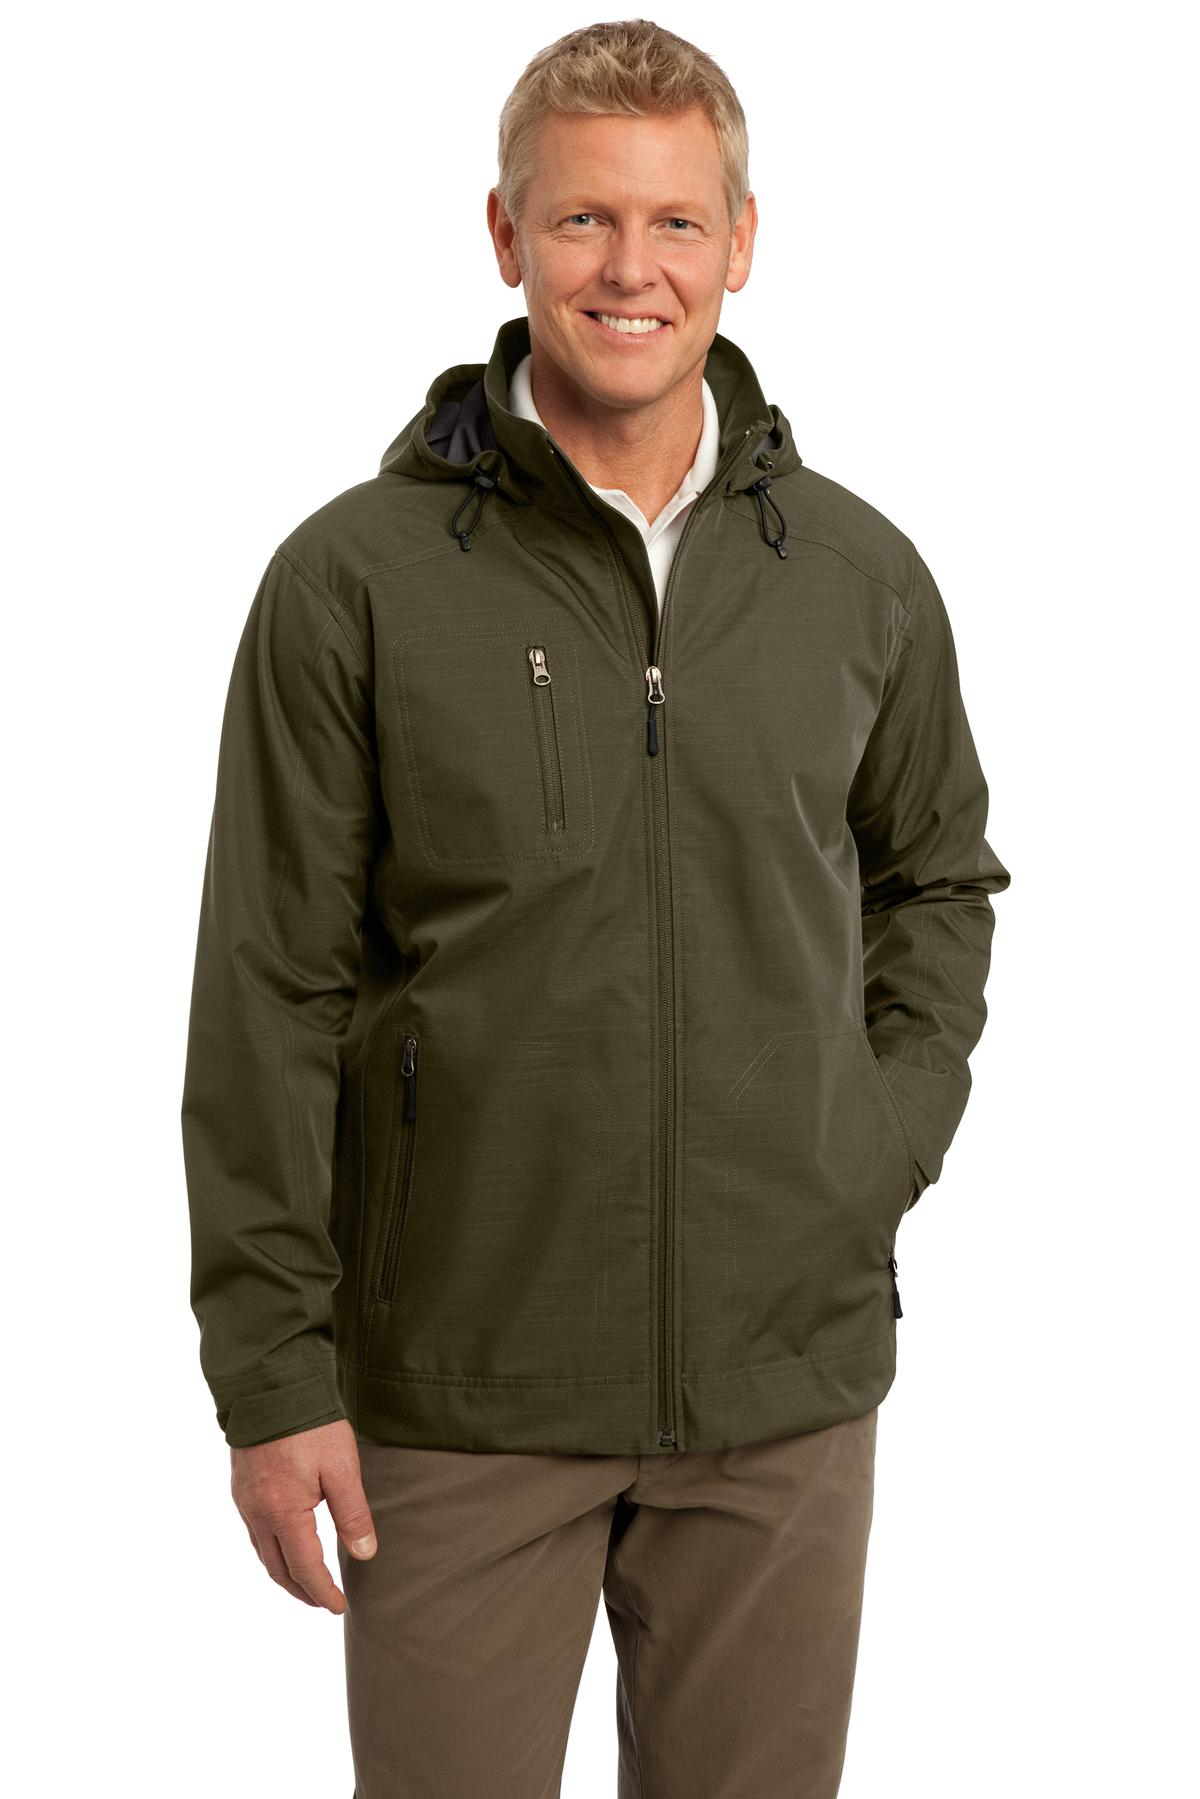 CLOSEOUT Port Authority  J308 - Reliant Hooded Jacket